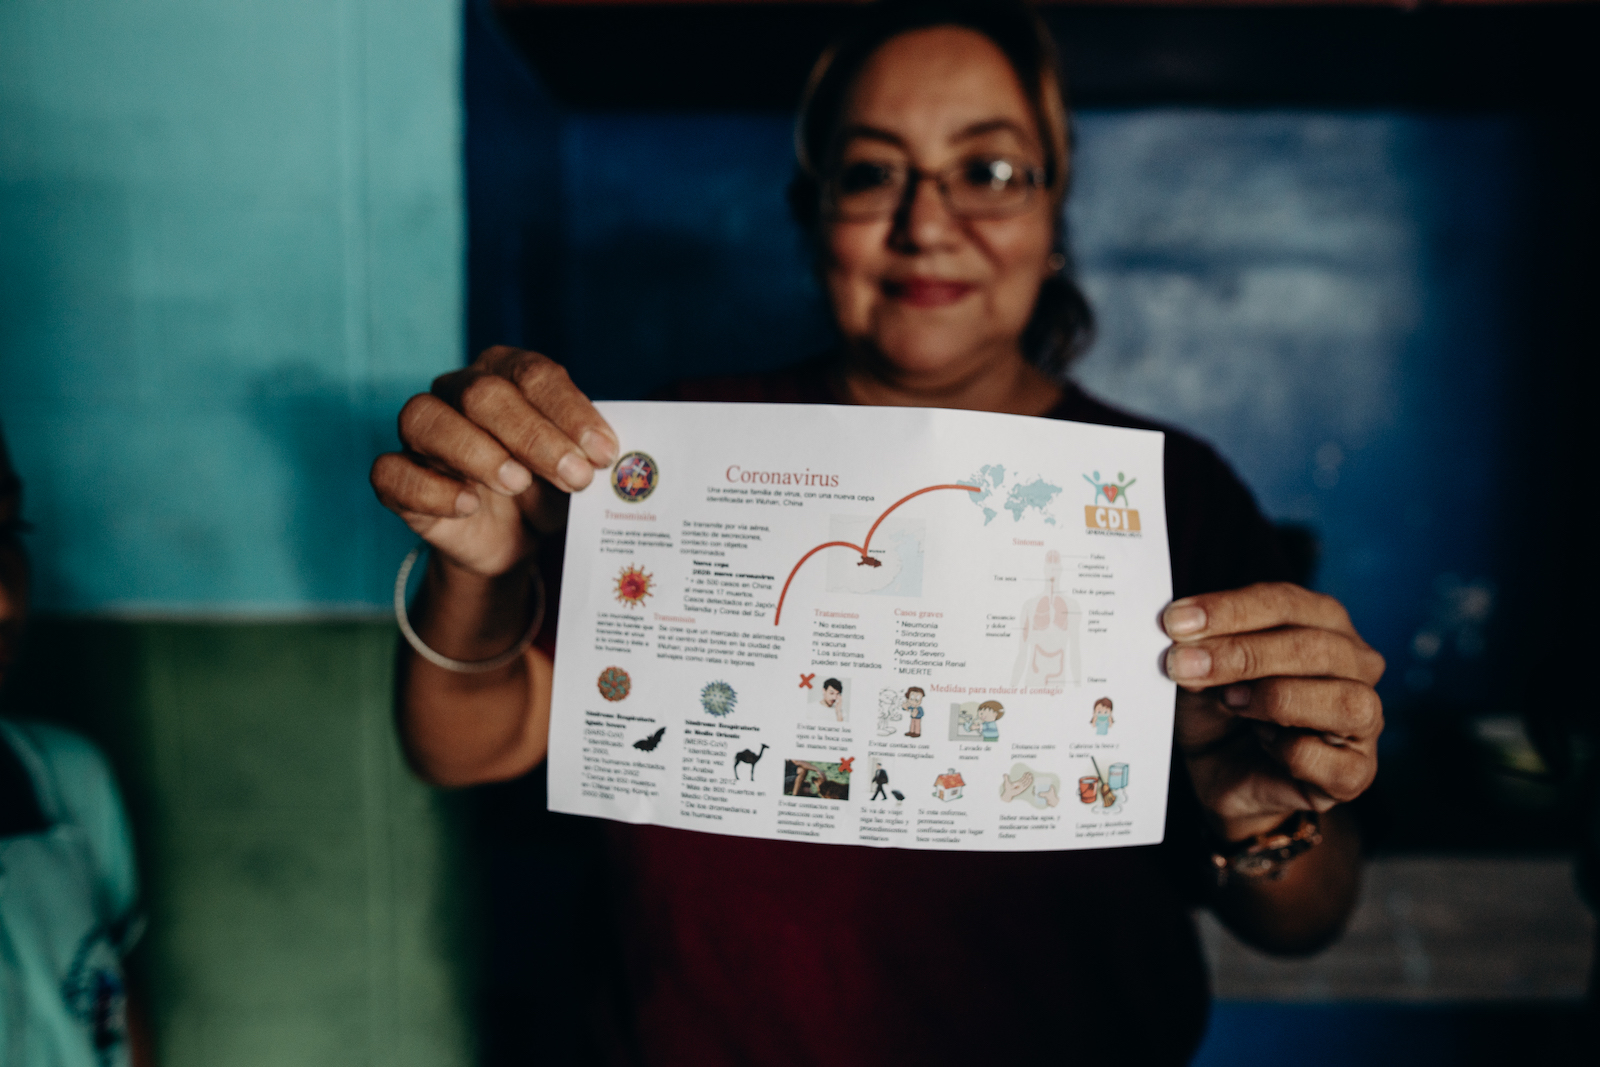 A woman holds up a sheet of paper with illustrations that says coronavirus.